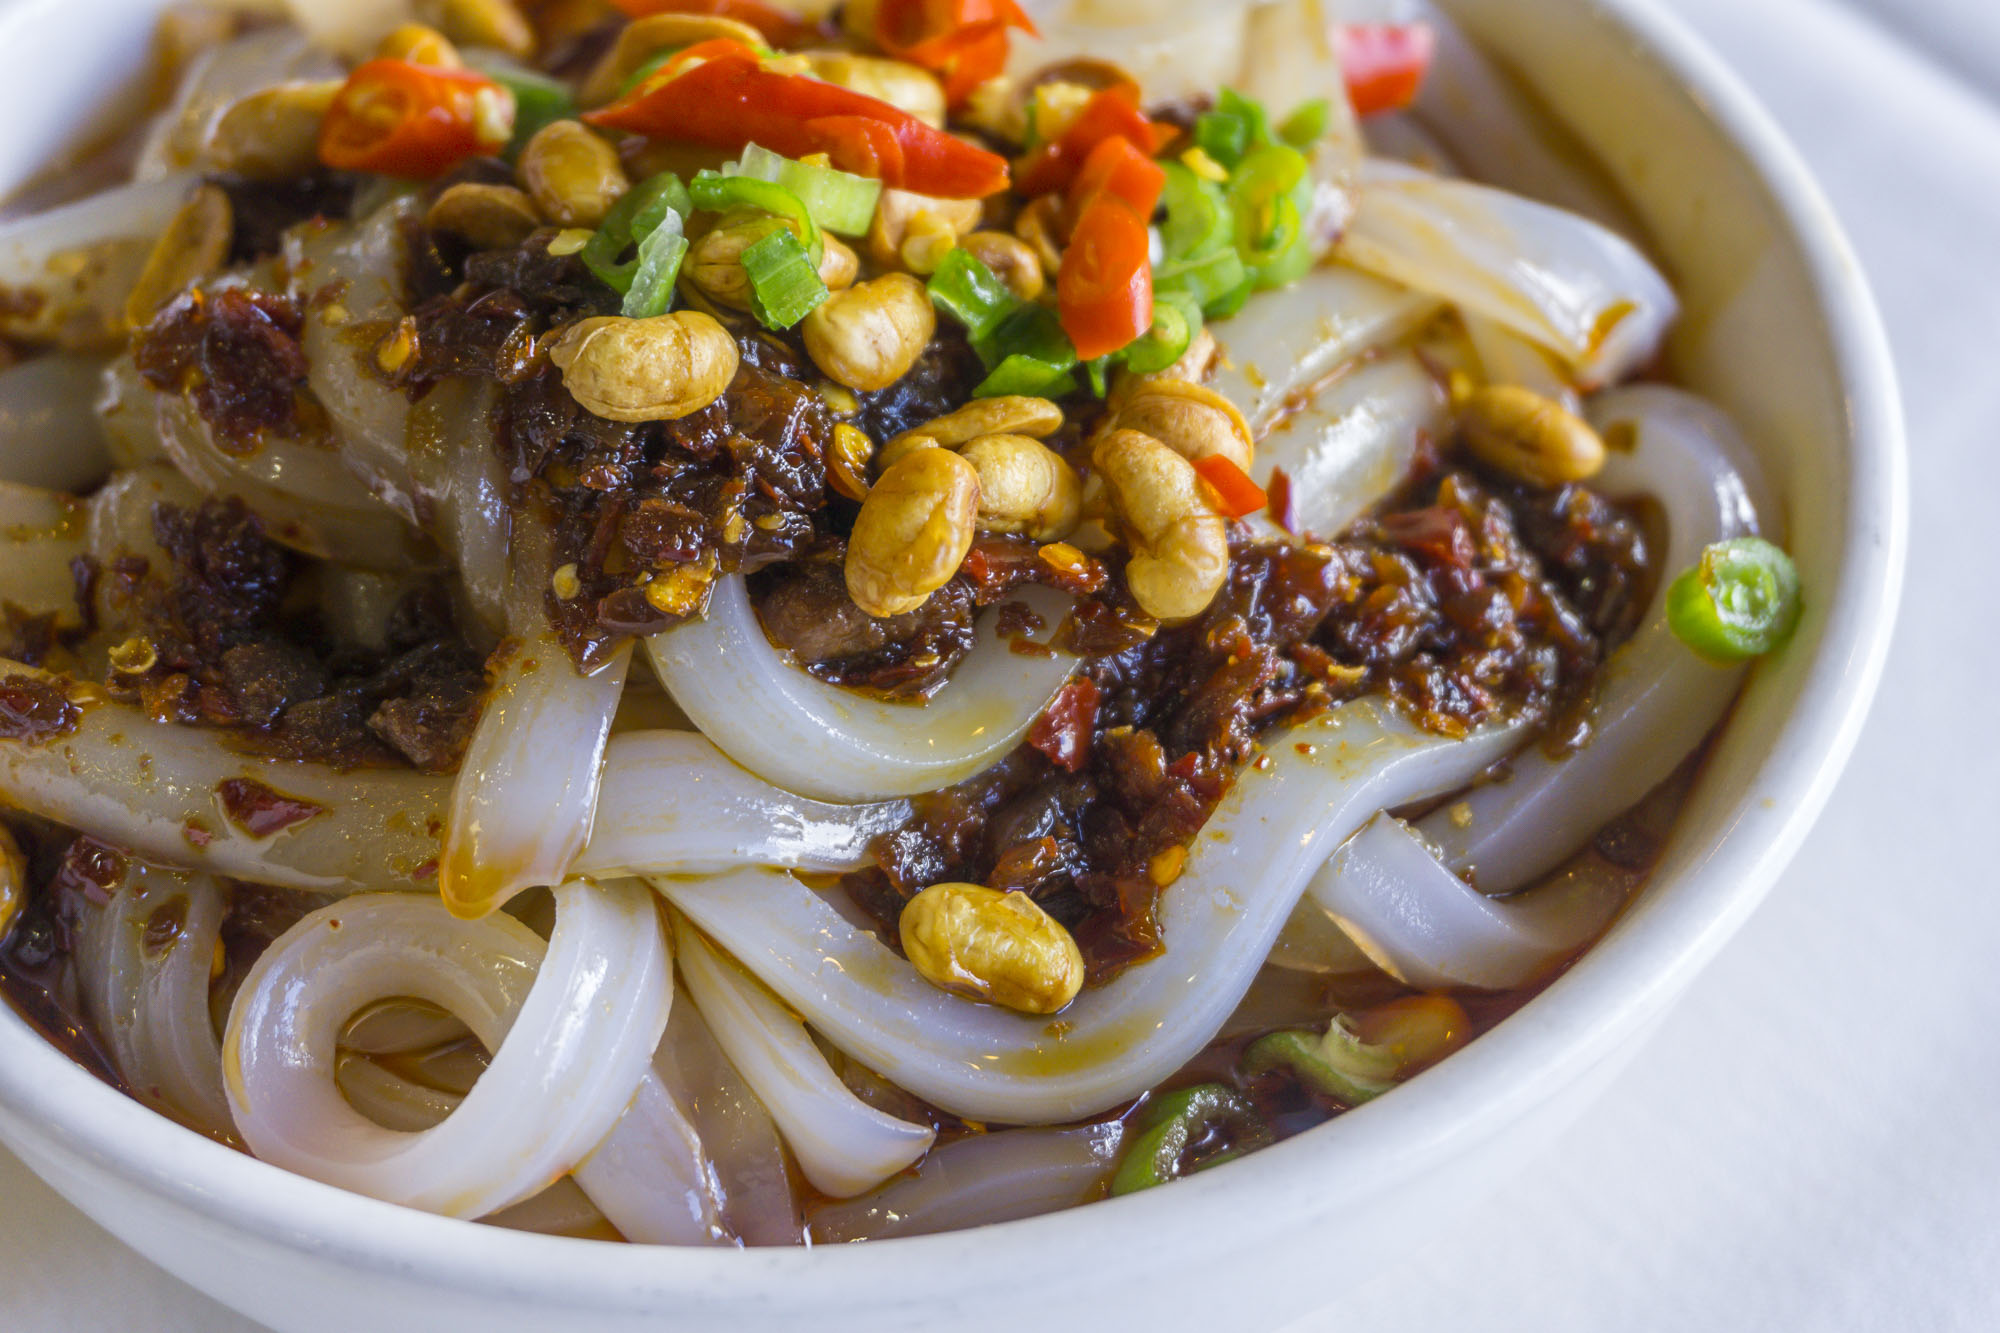 A closeup view of Chengu Taste's mung bean jelly noodles with chili sauce.